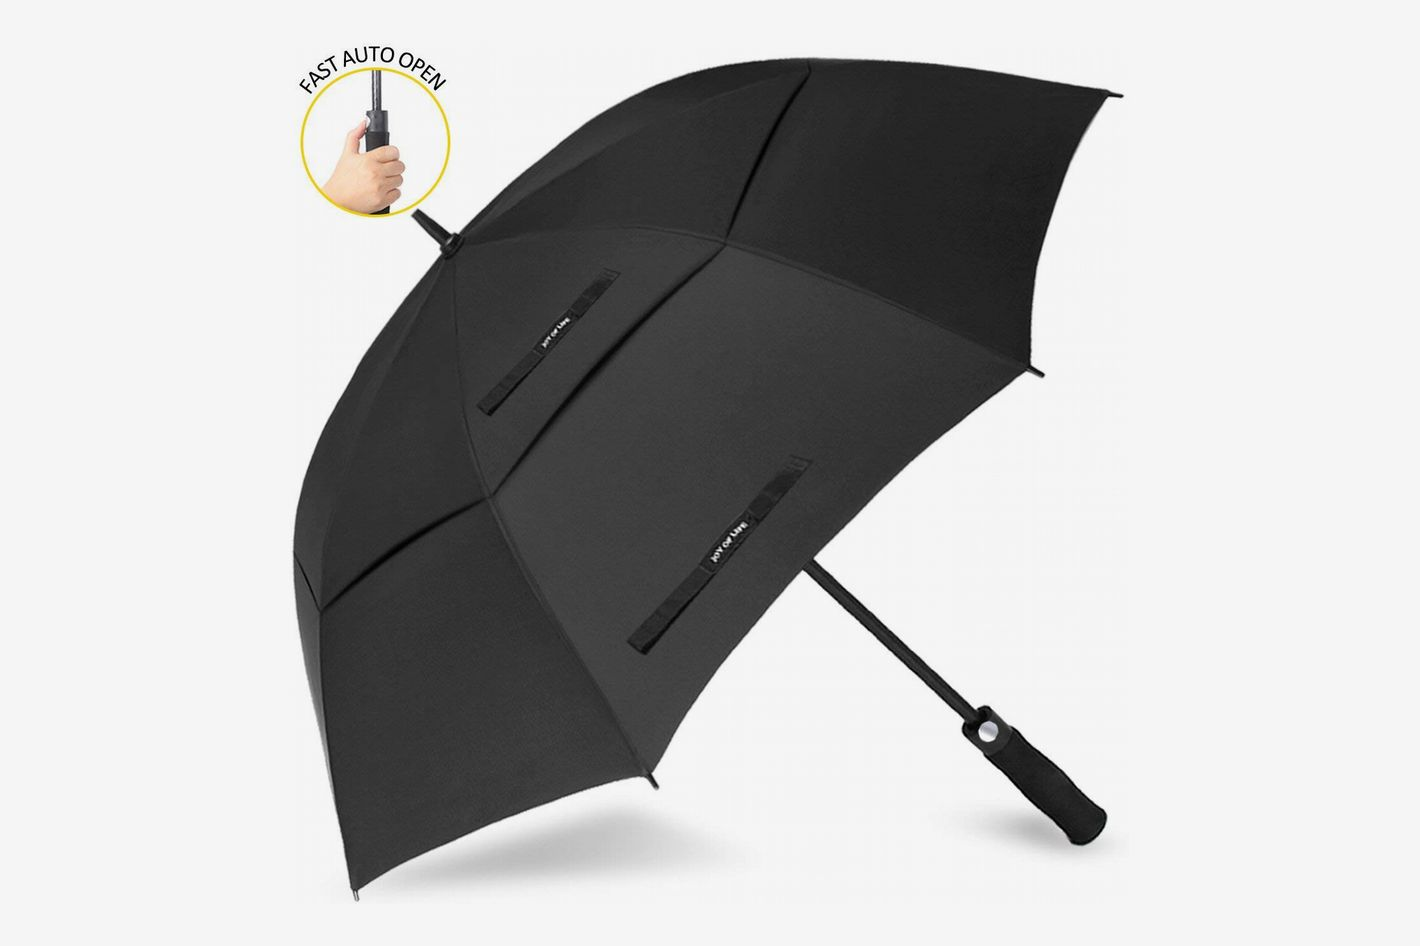 Zomake Automatic Open Golf Umbrella 62 68 Inch Large Rain Oversize Windproof Double Canopy At